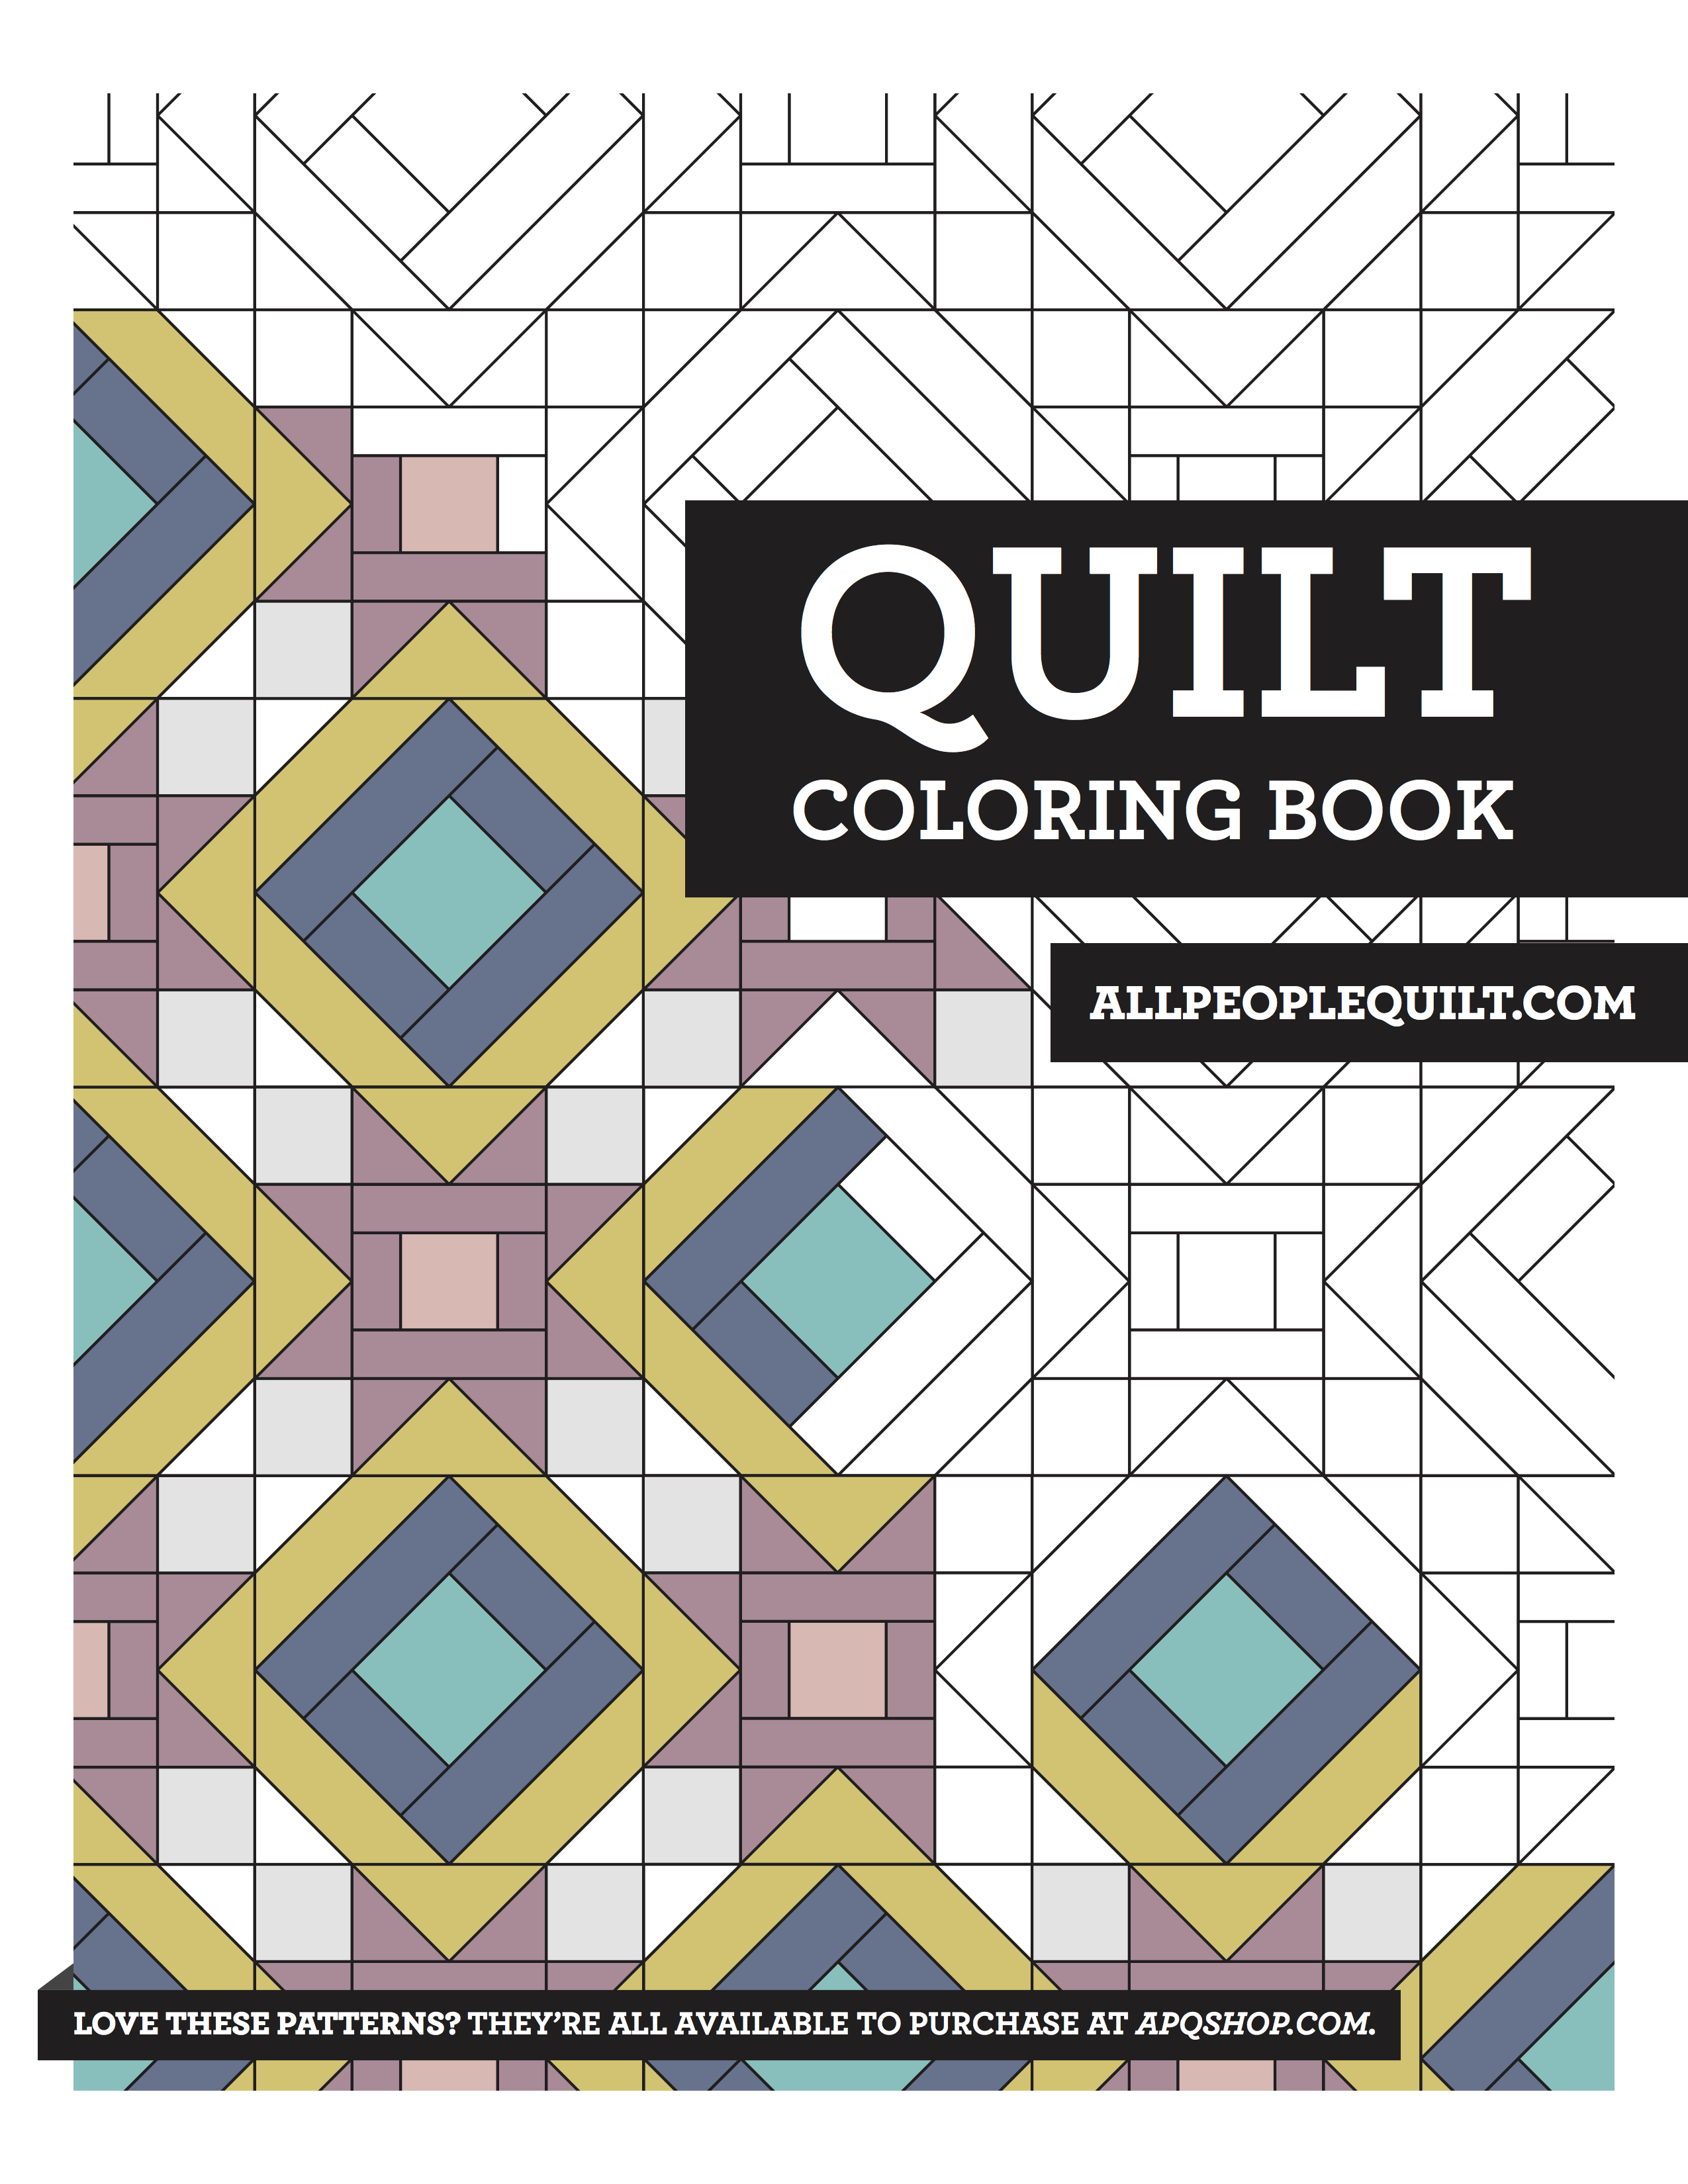 quilt_coloring_book.jpg